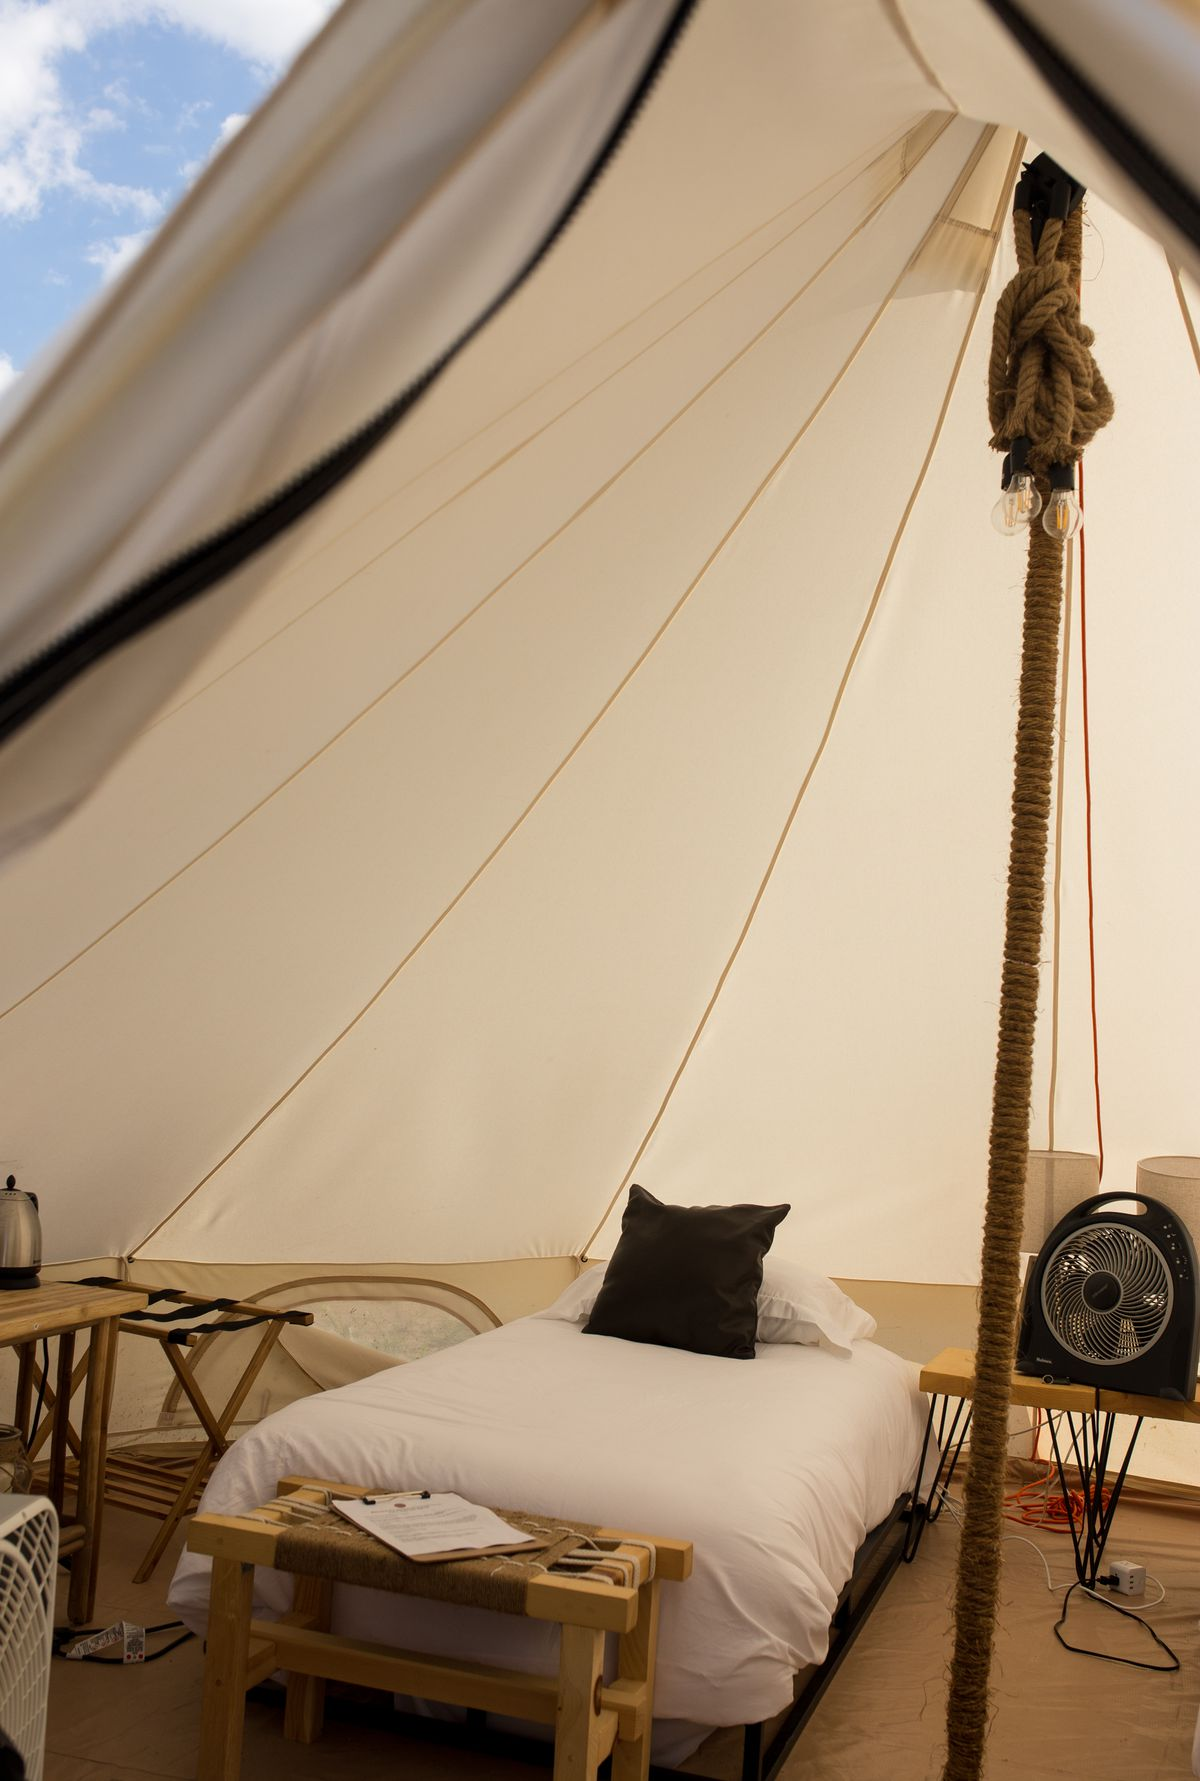 interior view of glamping tent twin bed